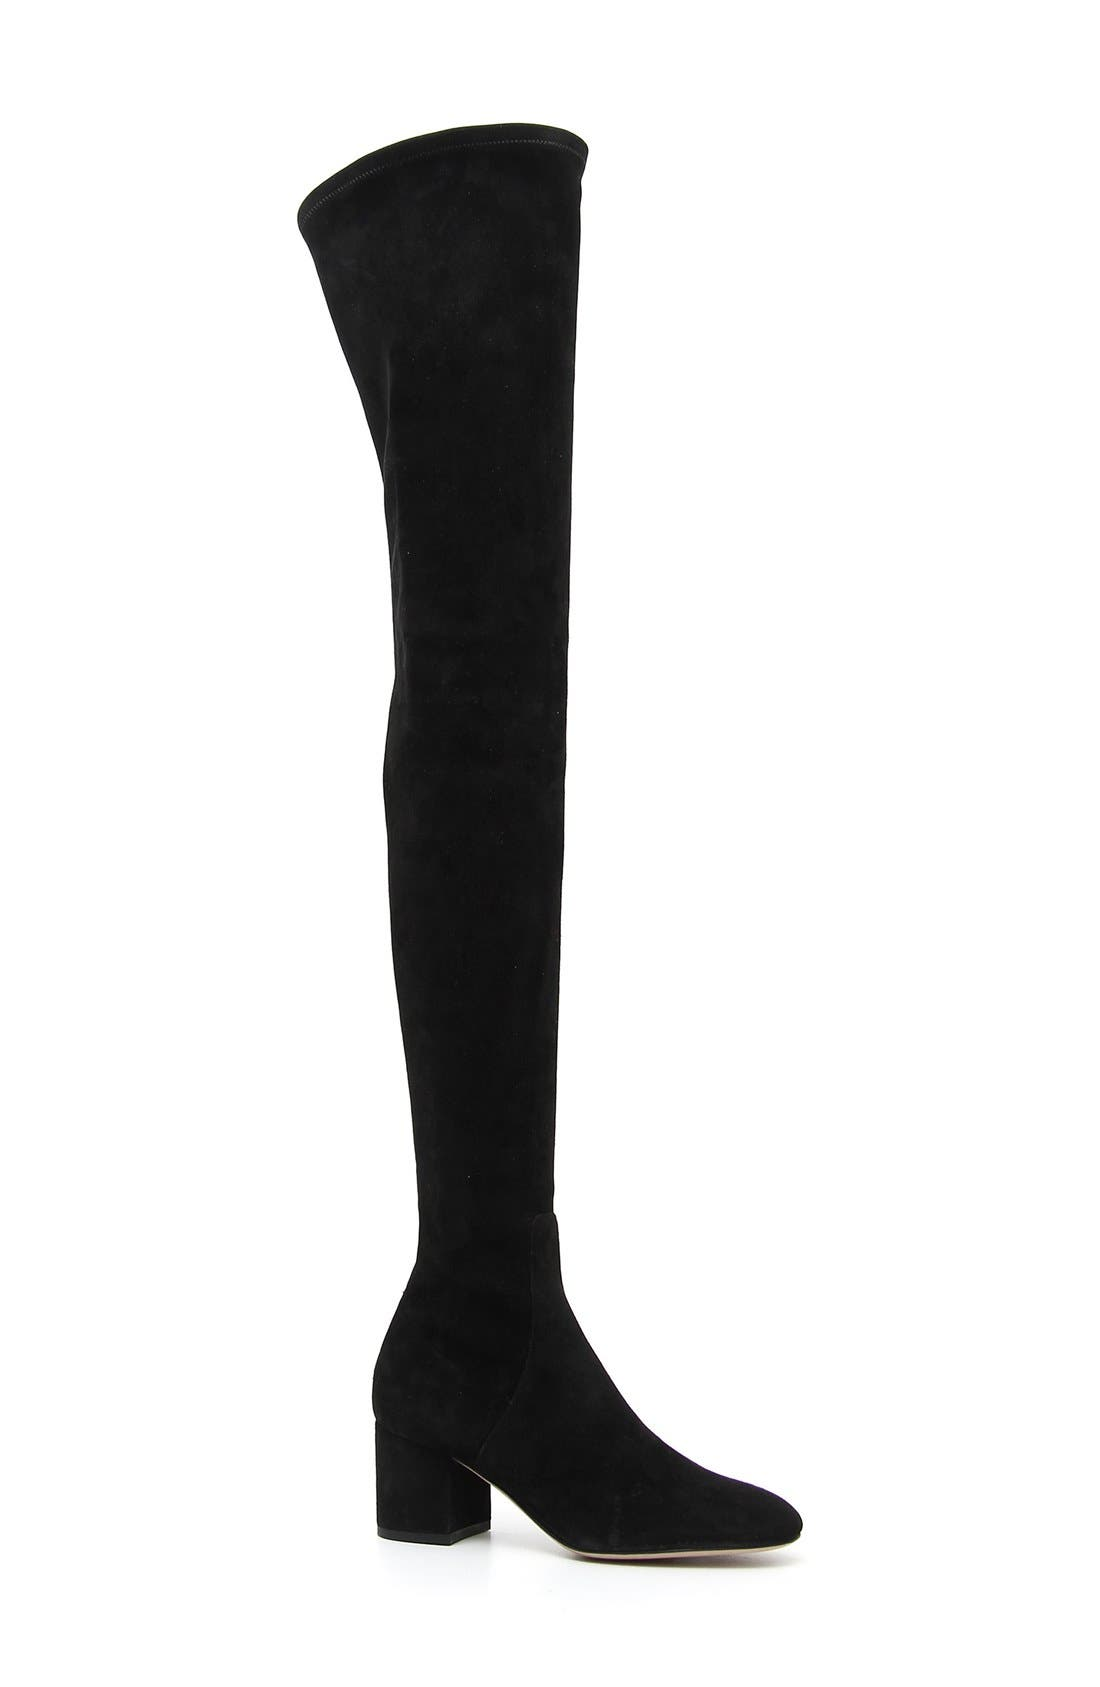 Alternate Image 1 Selected - Valentino Stretch Suede Over the Knee Boot (Women)